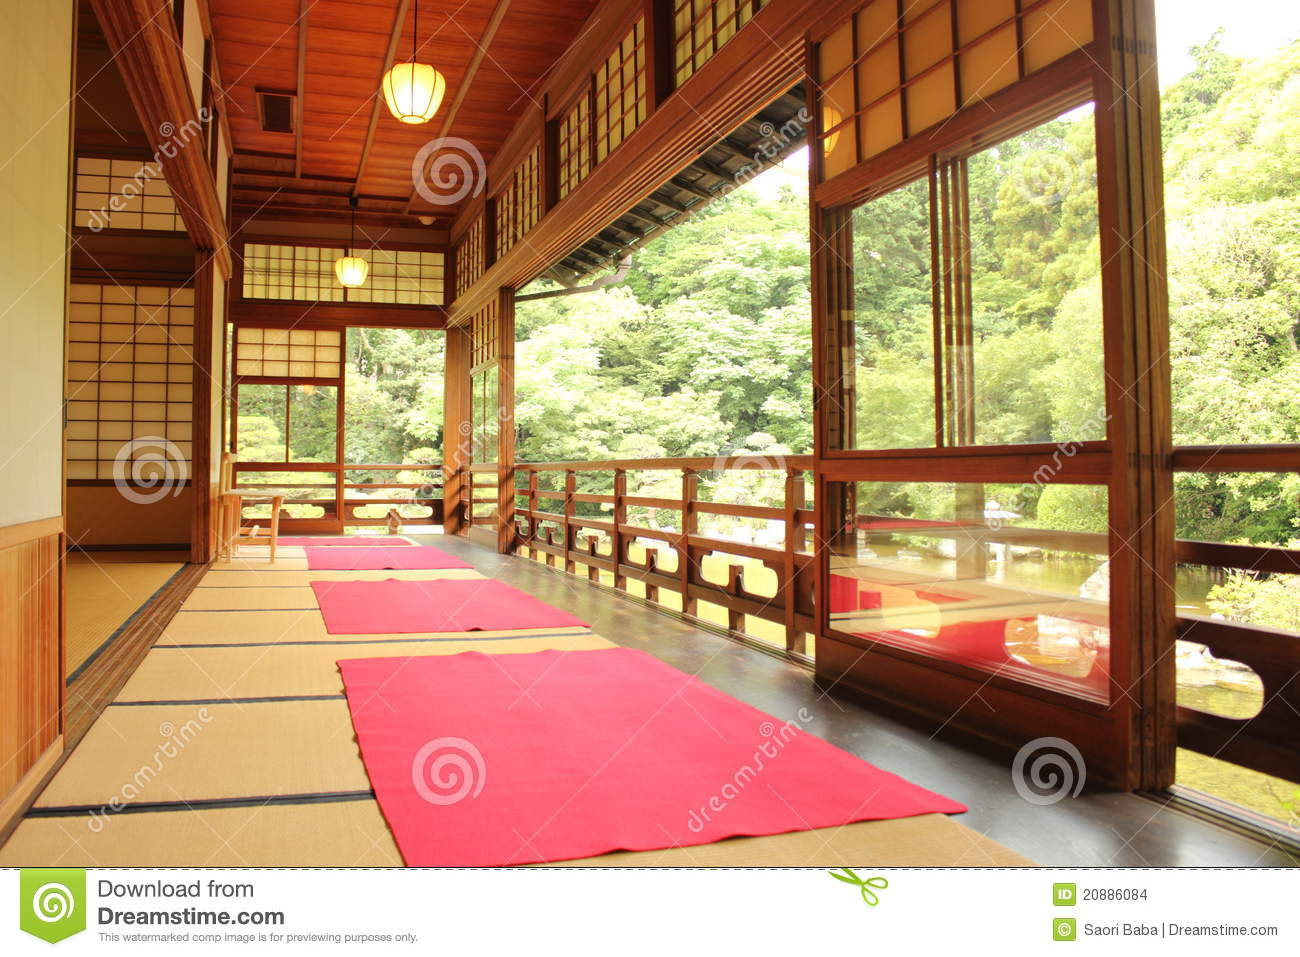 Japanese Room japanese room stock images - image: 20886084